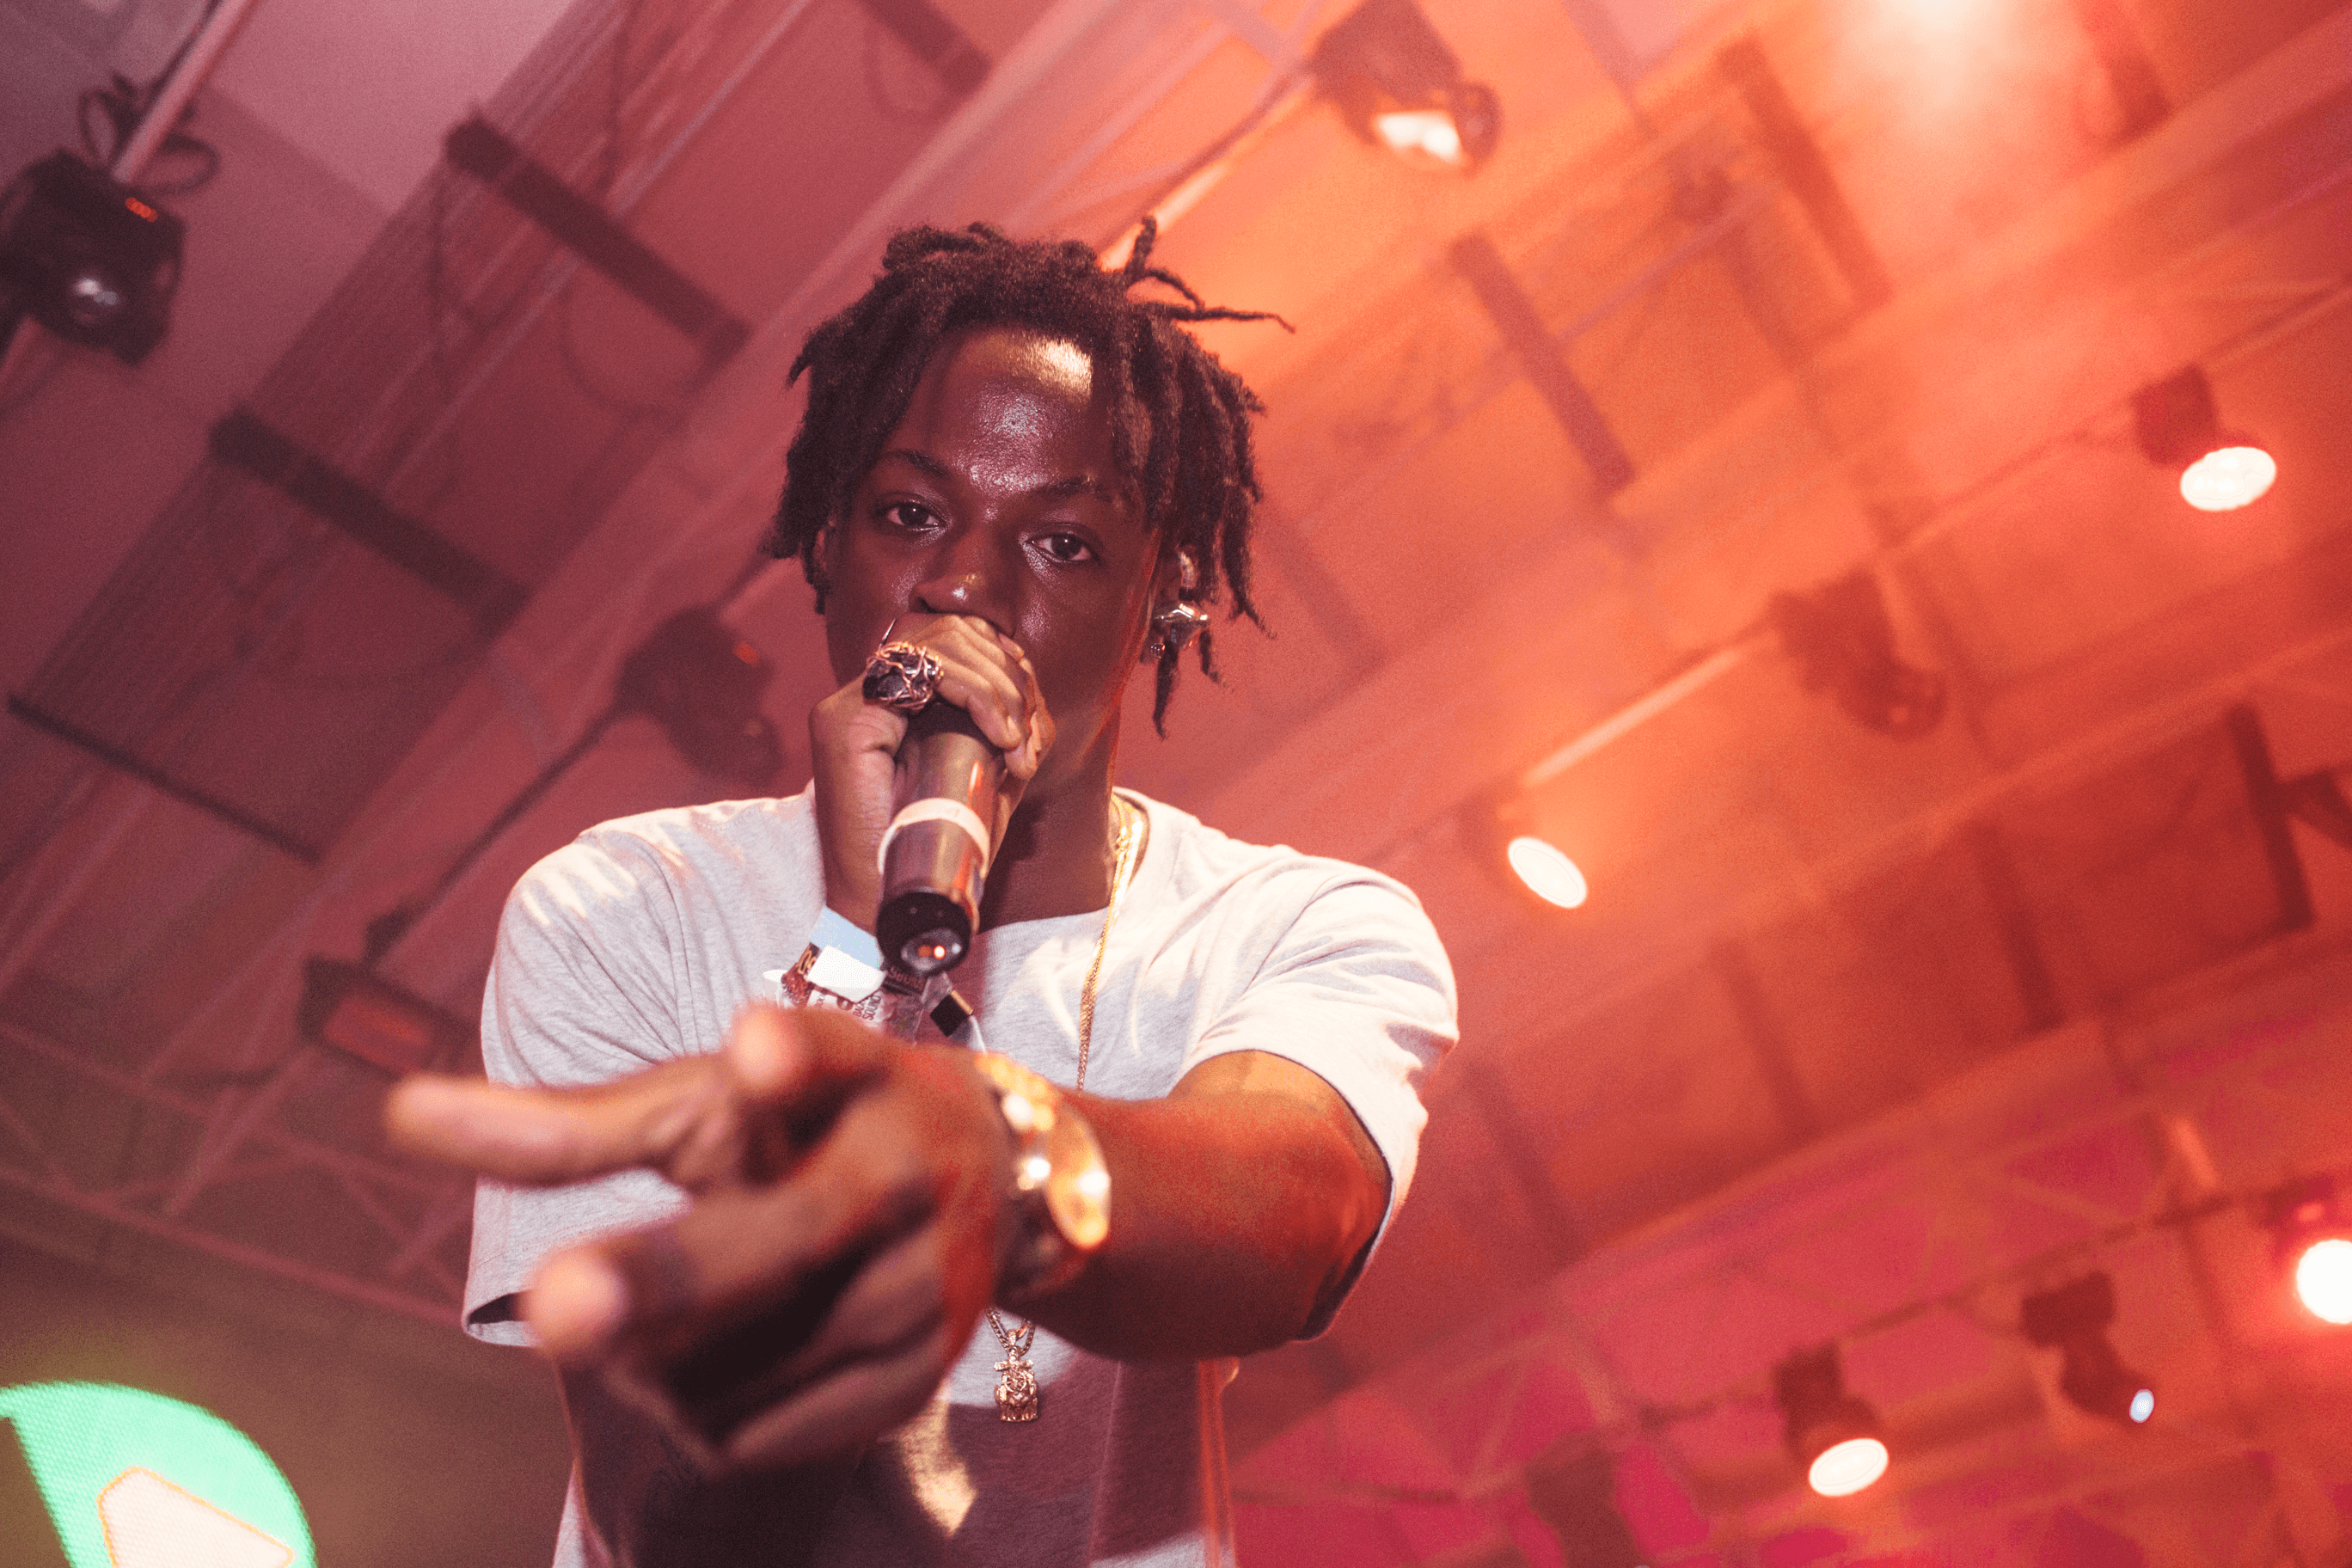 Joey Bada$$ shot by Ashley Verse – Loaded